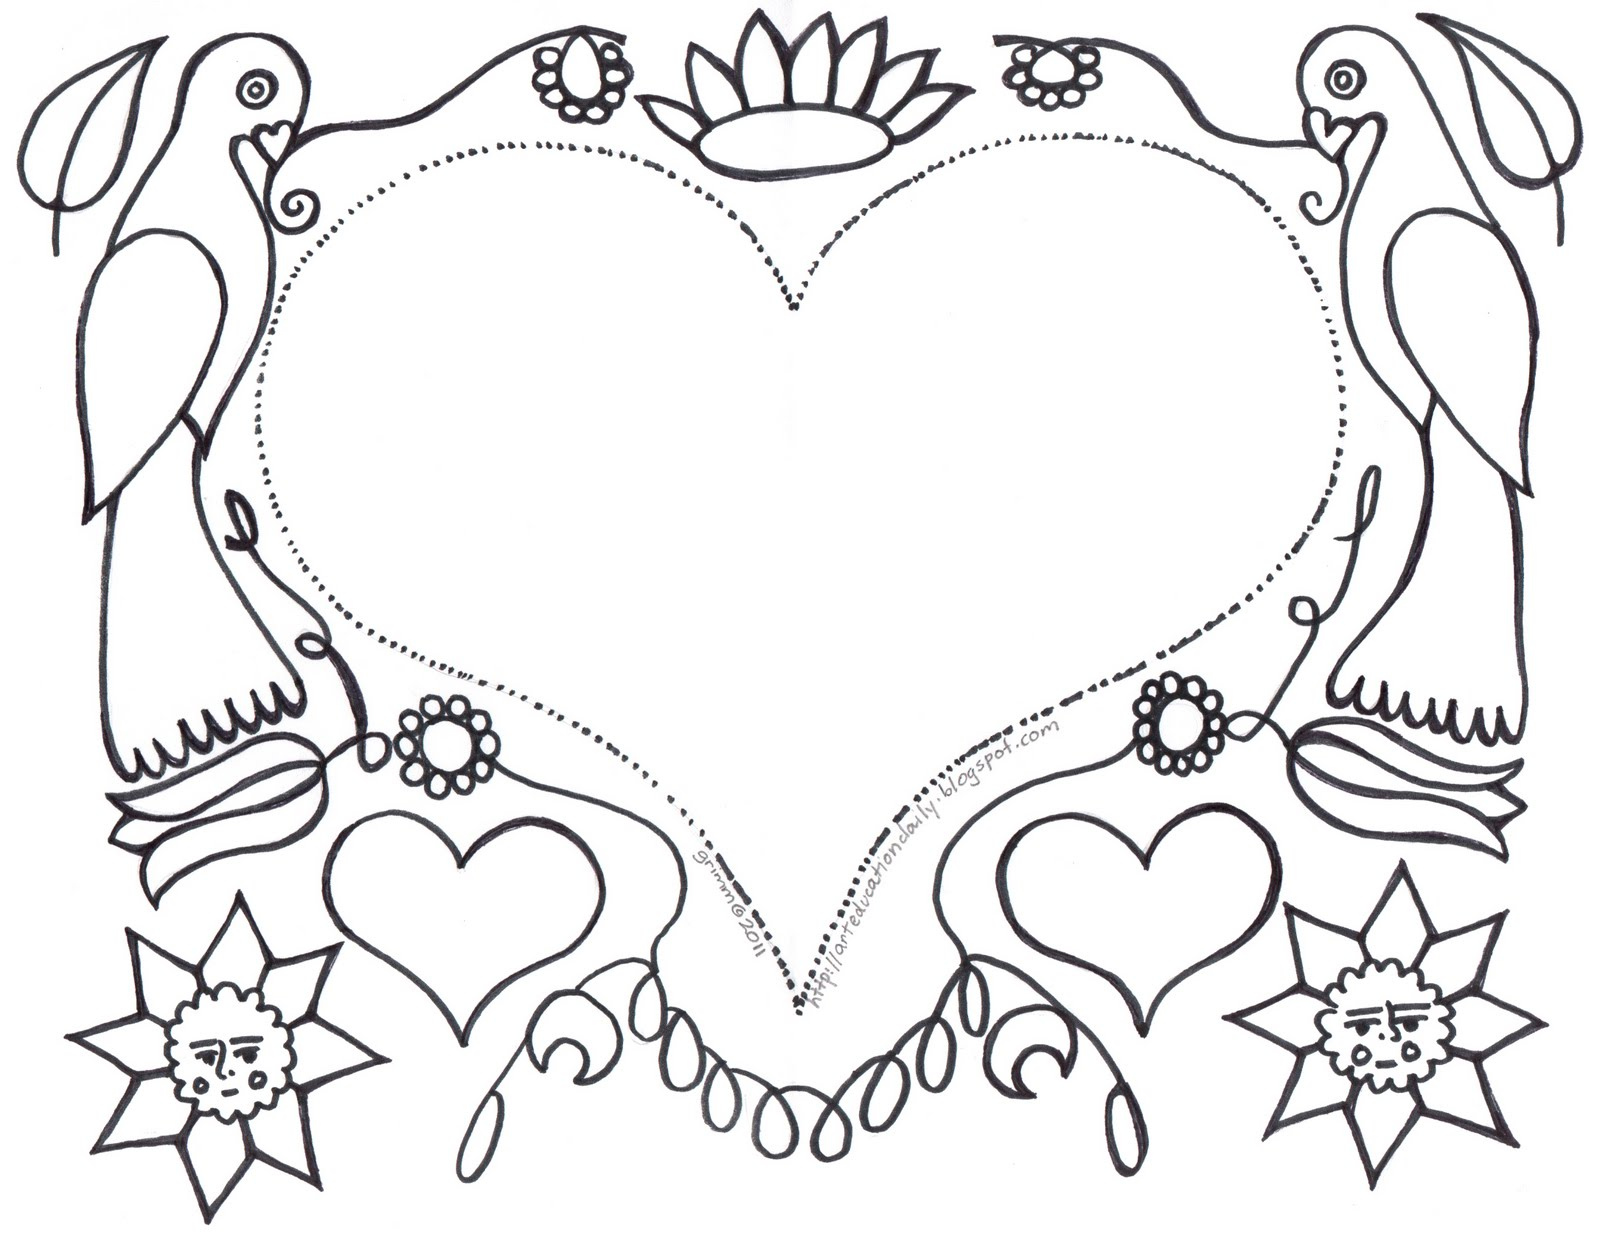 Wheat Clip Art Coloring Coloring Pages